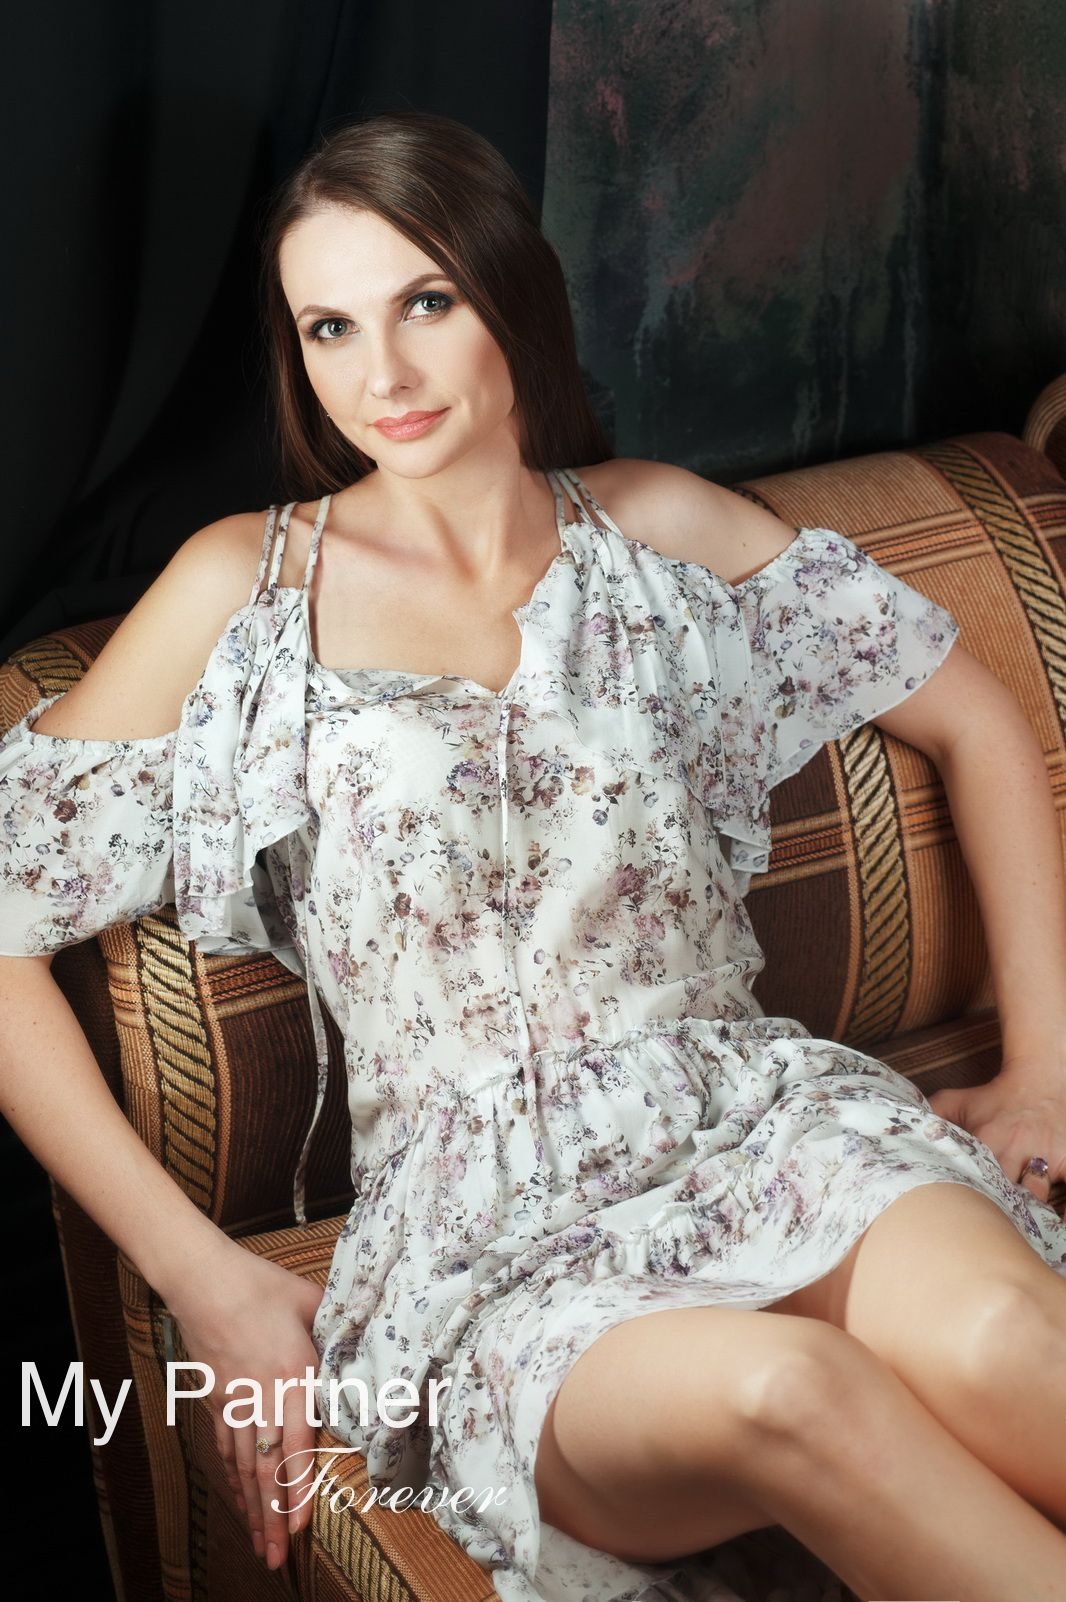 Datingsite to Meet Beautiful Belarusian Lady Anna from Grodno, Belarus